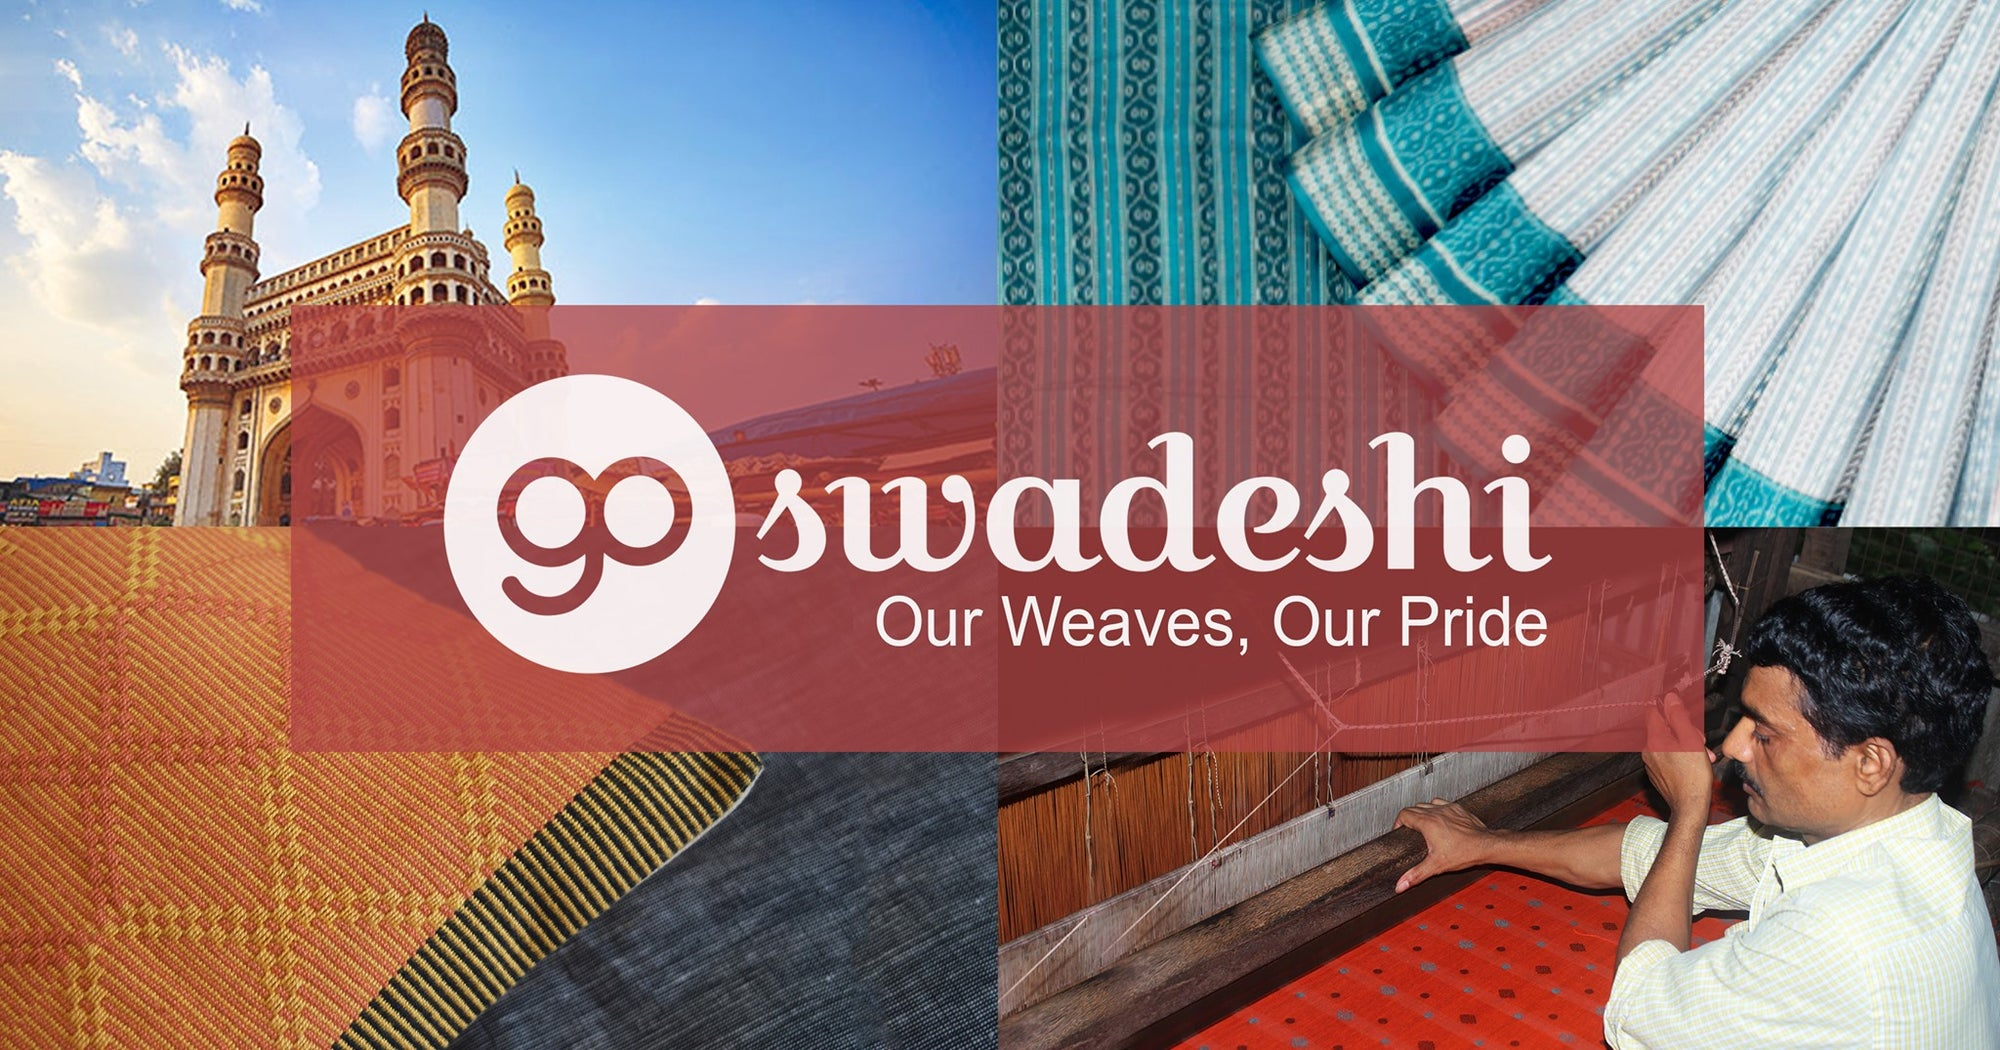 GoSwadeshi in Hyderabad